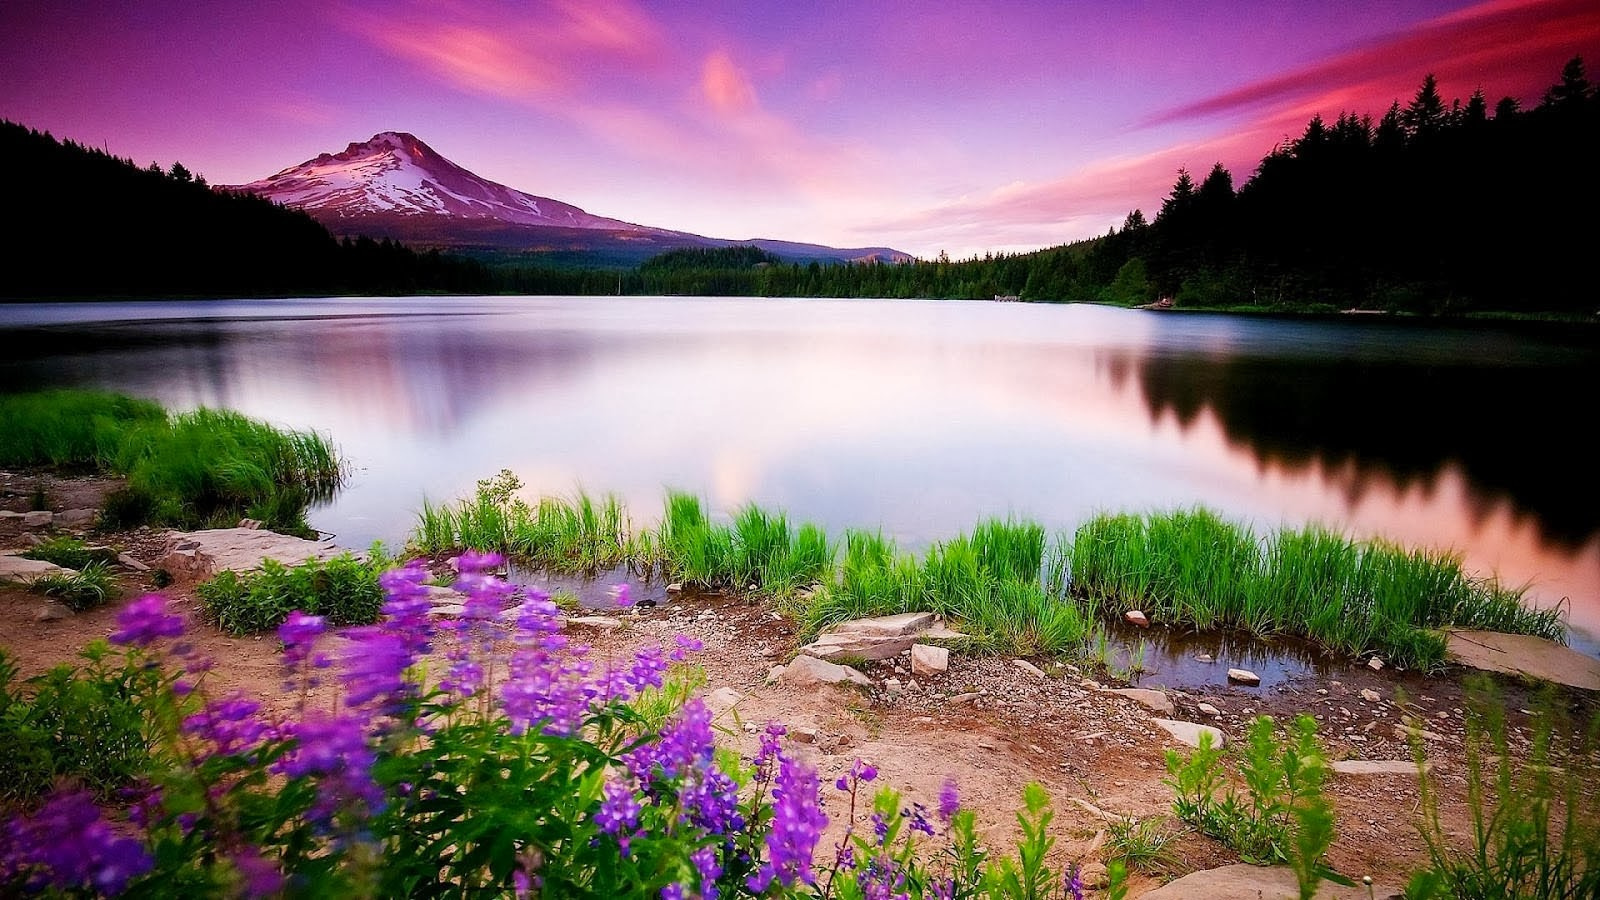 Full HD Size Nature Wallpapers Free Downloads | Full HD Nature Wallpapers